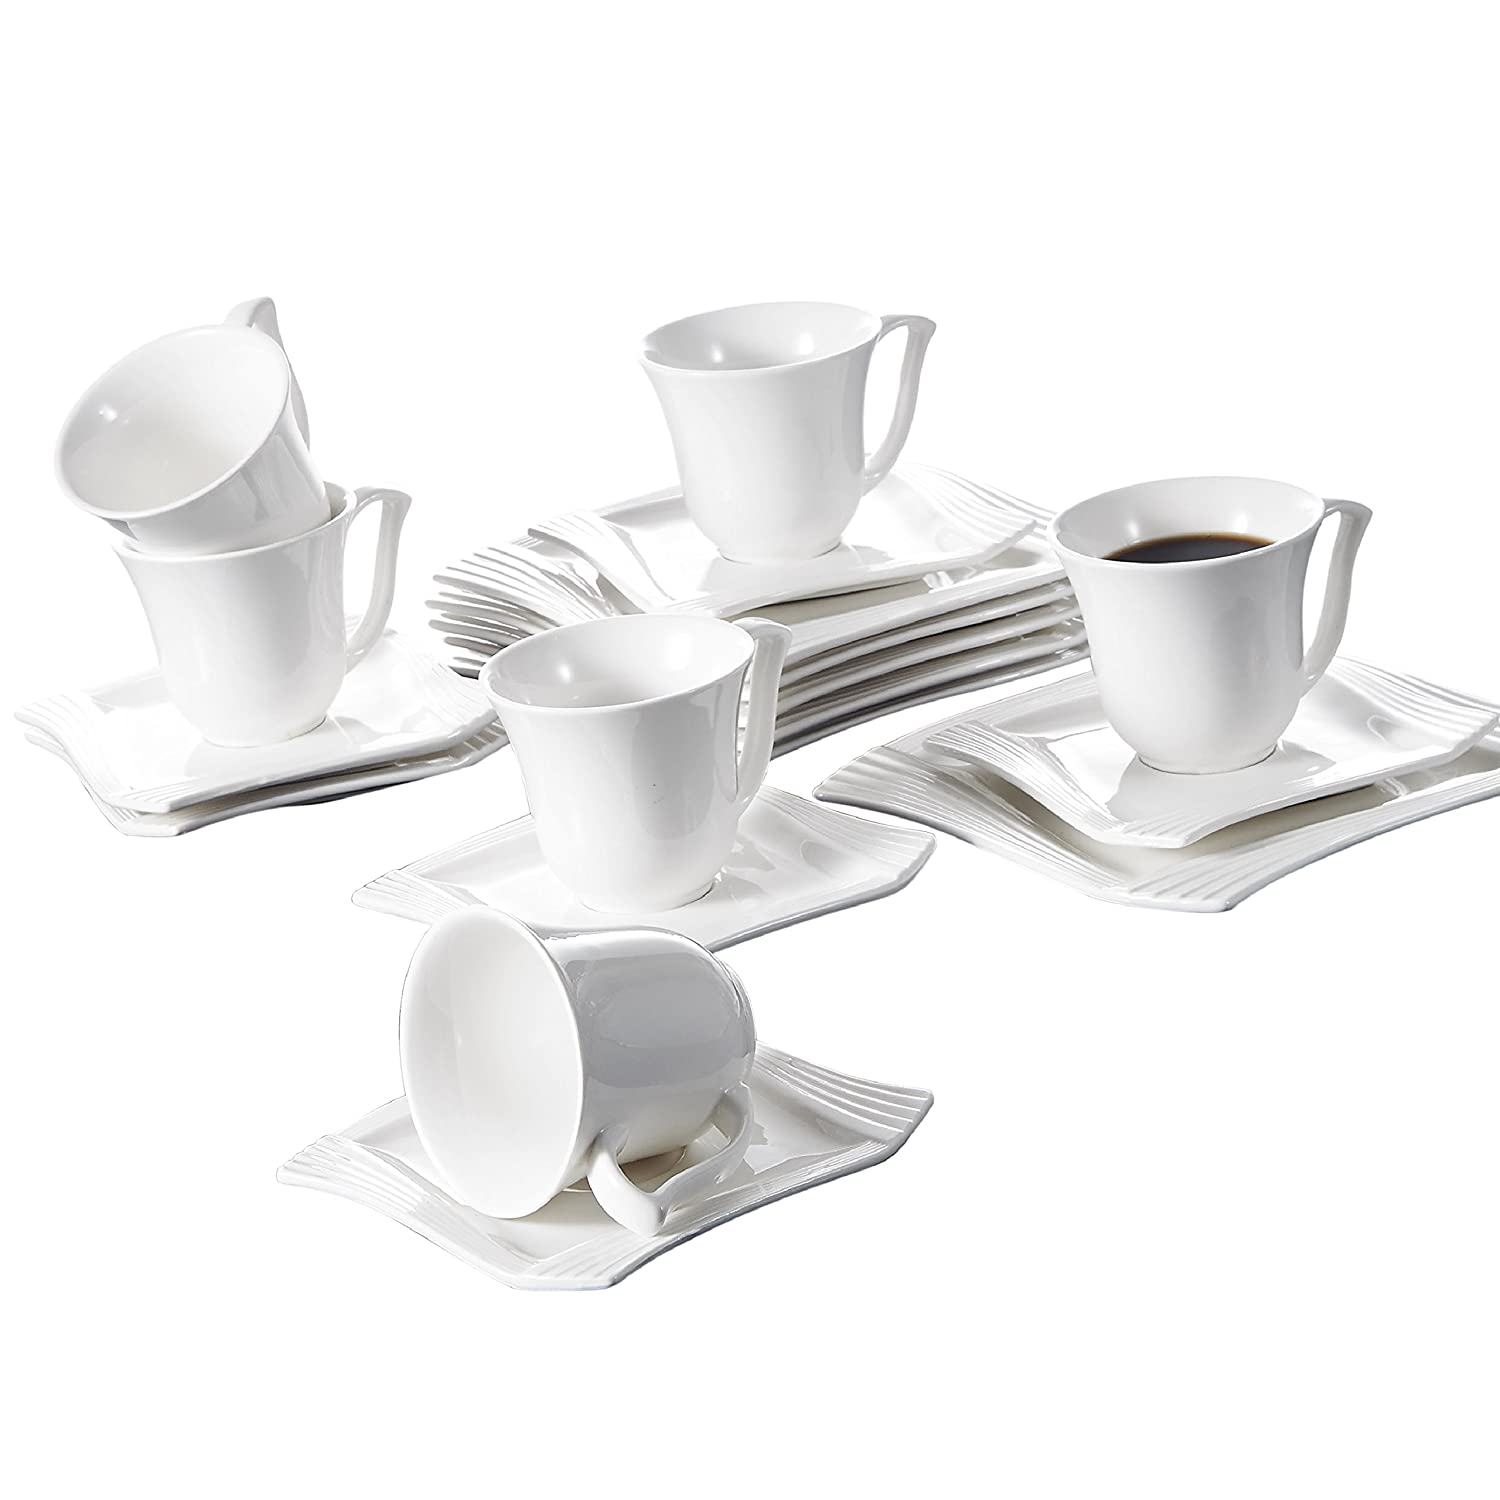 Malacasa, Series Amparo, Ivory White Porcelain Afternoon Tea Set, 18-Piece Ceramic Coffee Serving Set of Cups, Saucers and Plates for 6 AMPARO-18